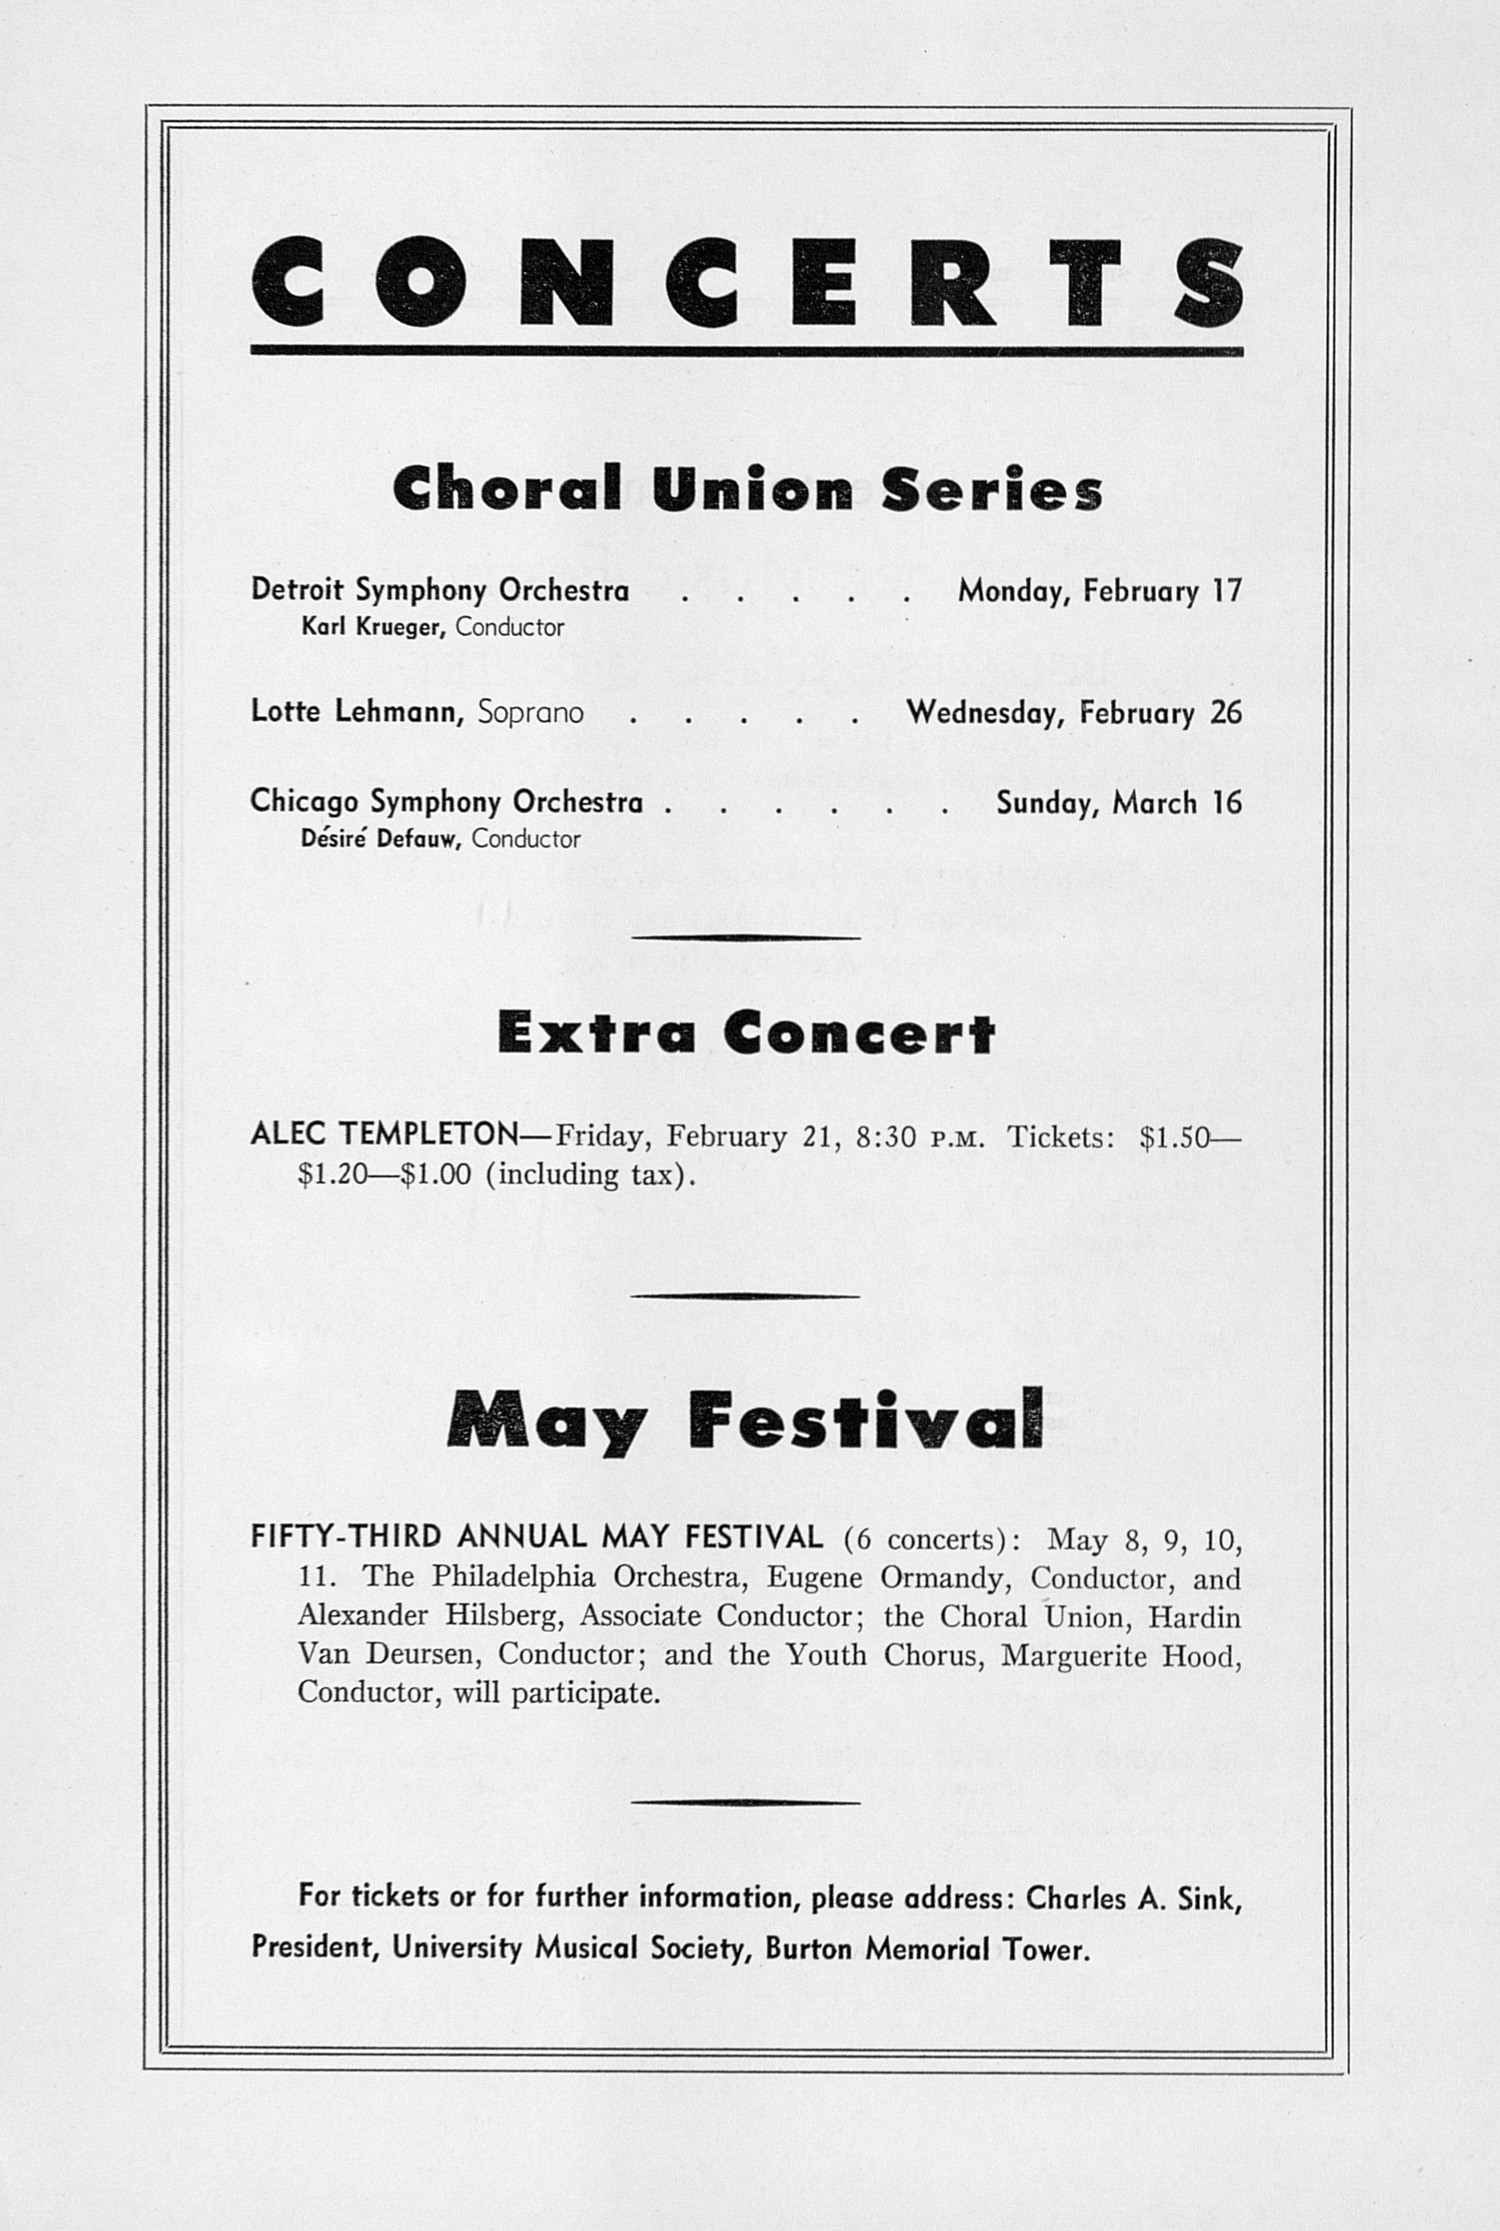 UMS Concert Program, January 24, 1947: Seventh Annual Chamber Music Festival -- Budapest String Quartet image